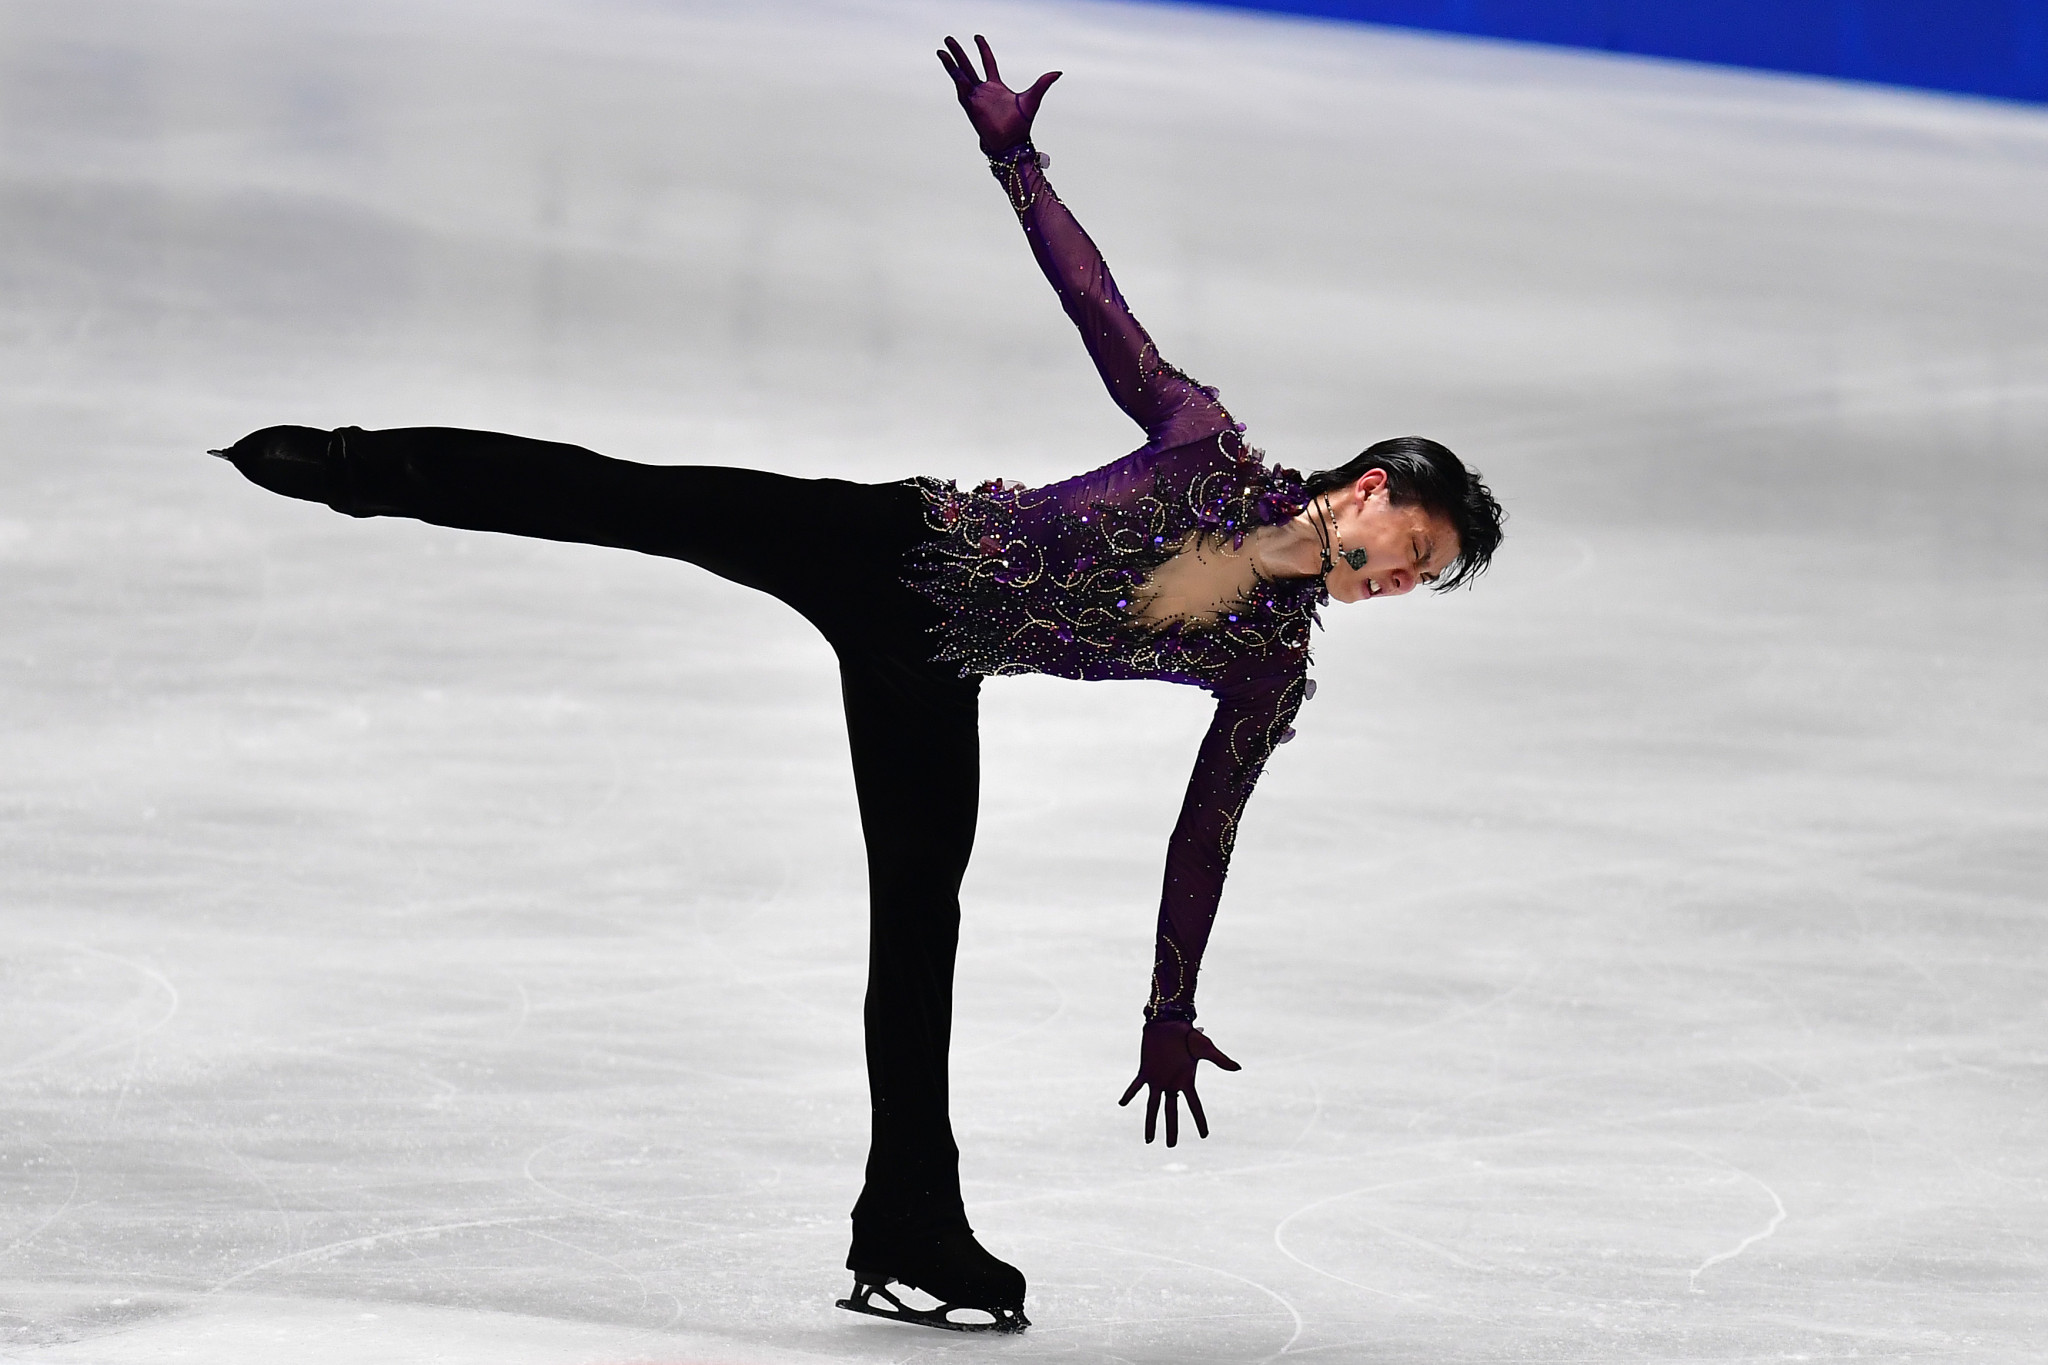 Asthmatic Hanyu to skip Grand Prix of Figure Skating season over COVID-19 concerns